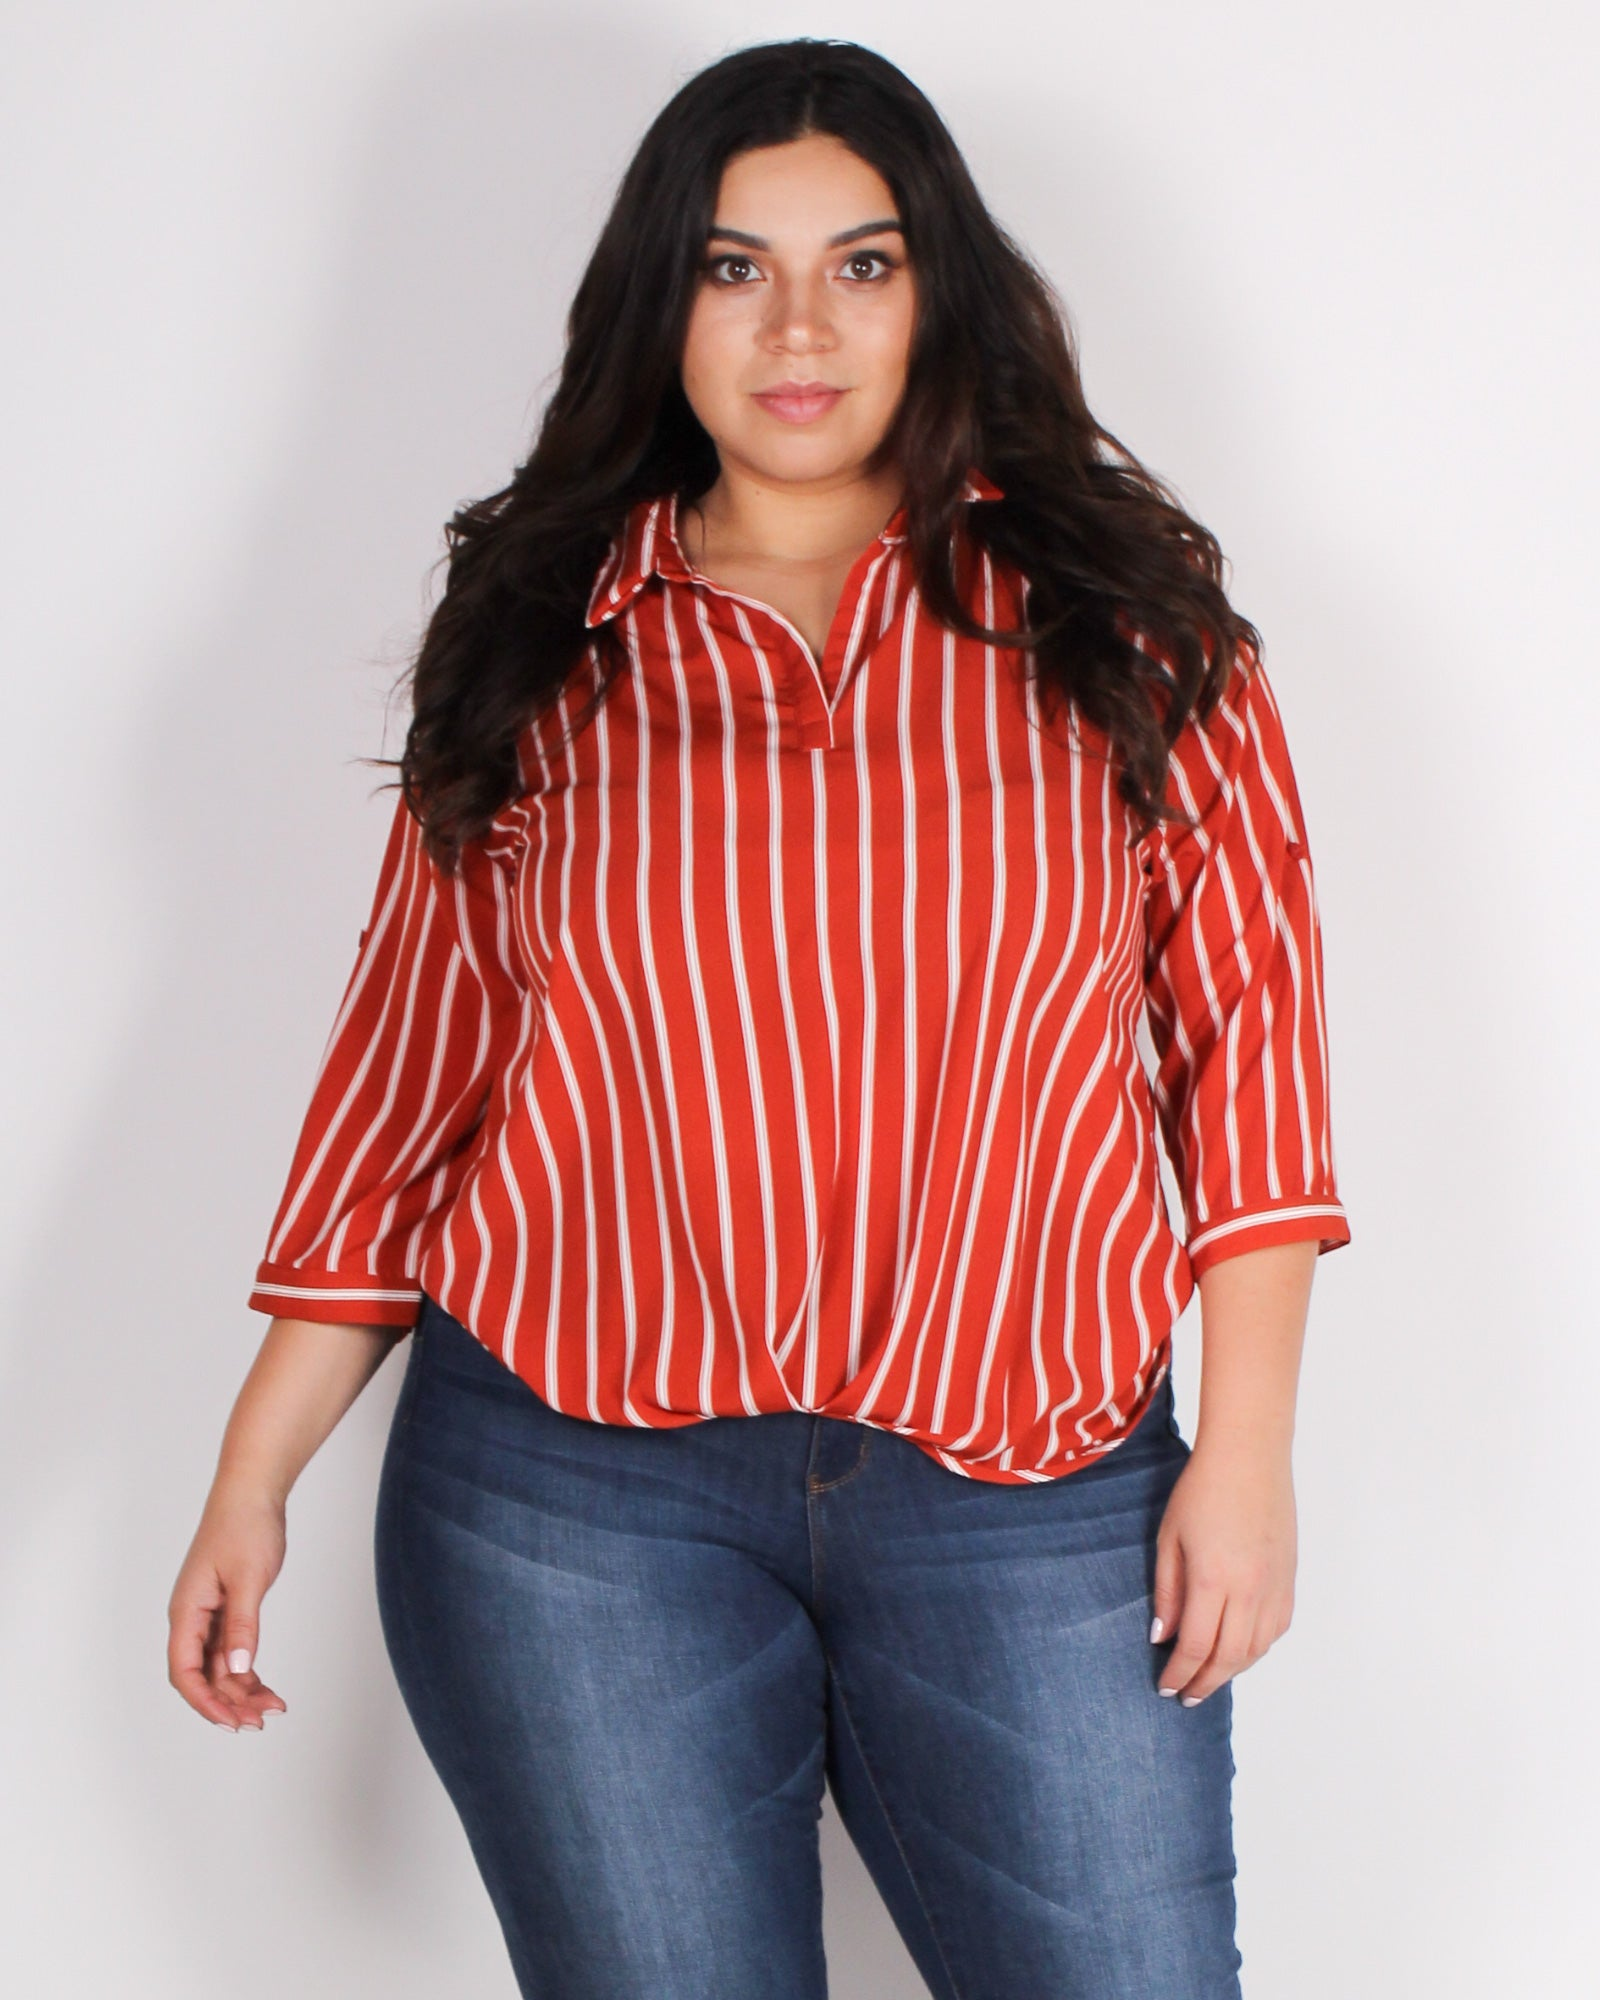 Fashion Q Shop Q Treat Me Like a Lady Striped Plus Blouse (Rust) ZB10096F2